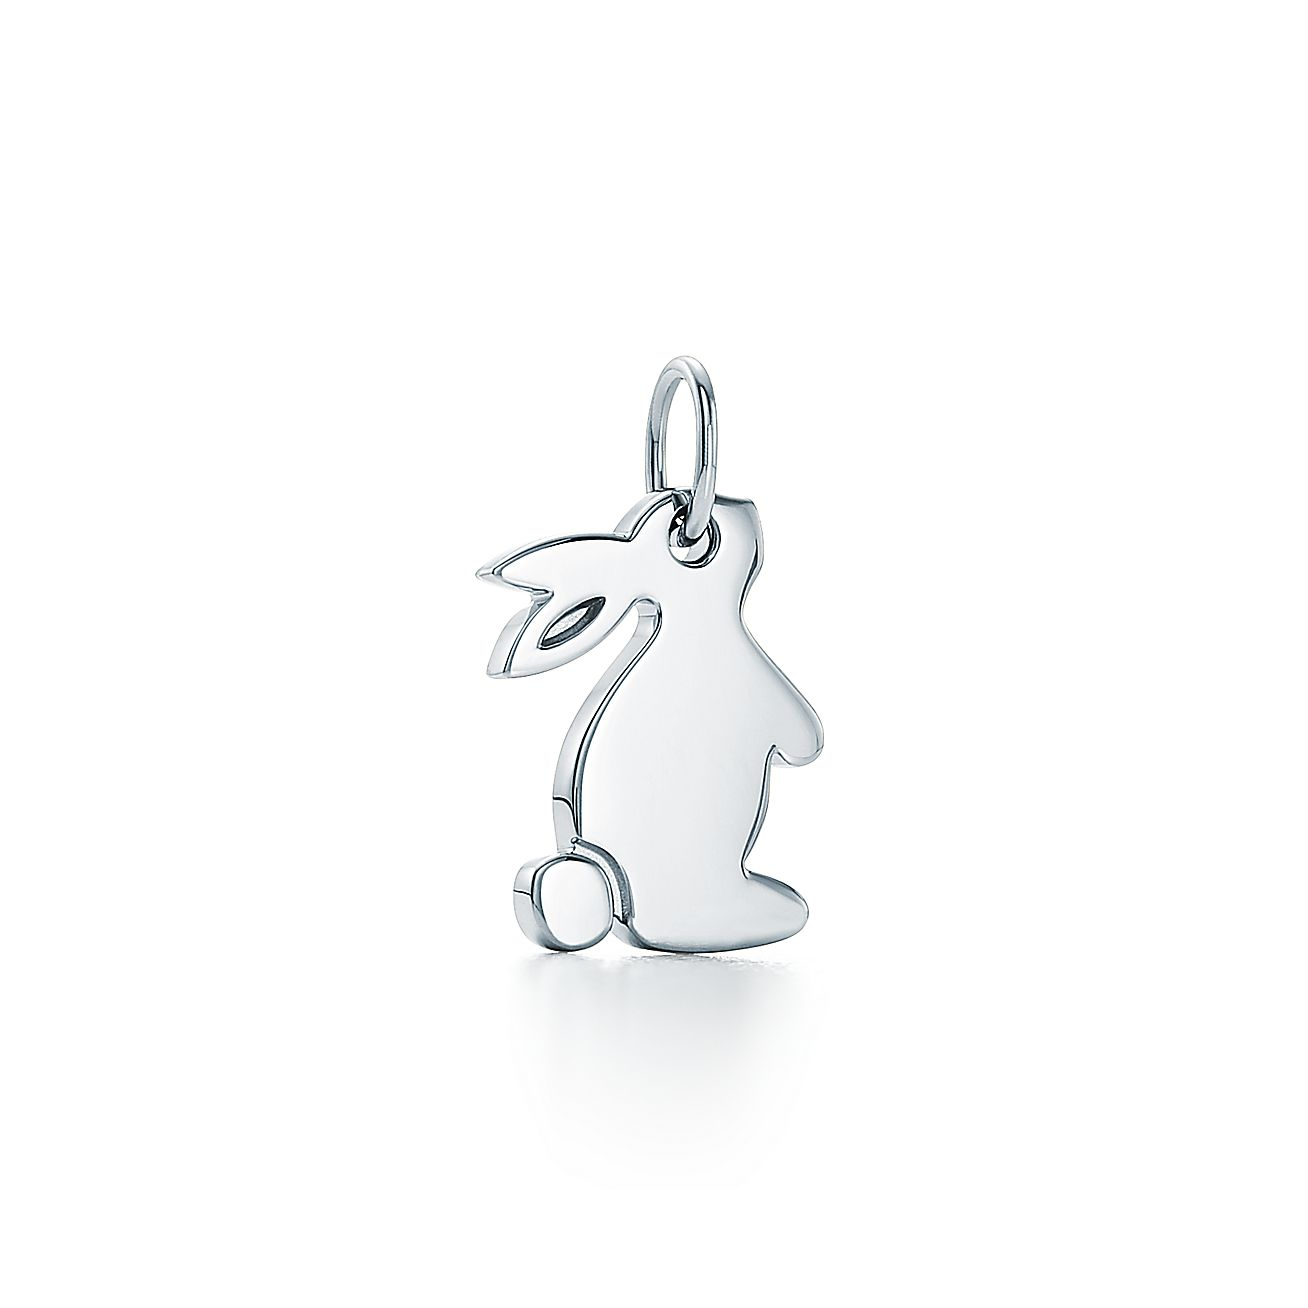 Tiffany charms snuggle bunny charm in sterling silver tiffany co aloadofball Images